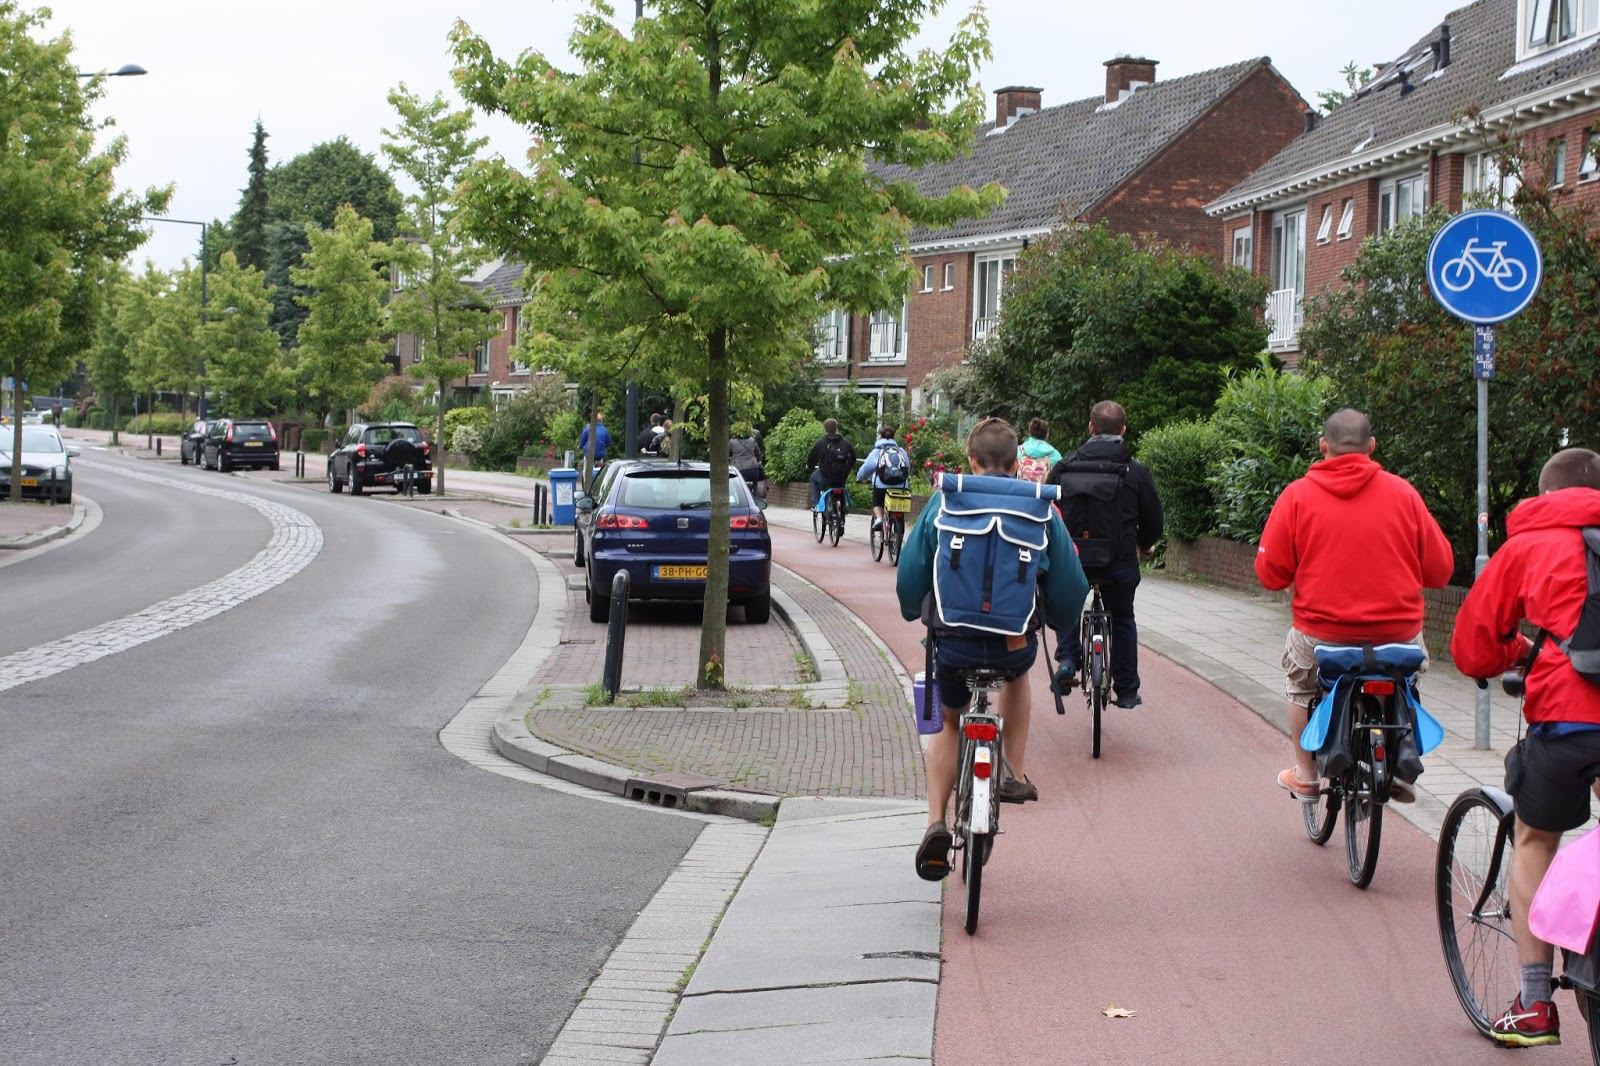 Dutch Cycle Lane - Netherlands